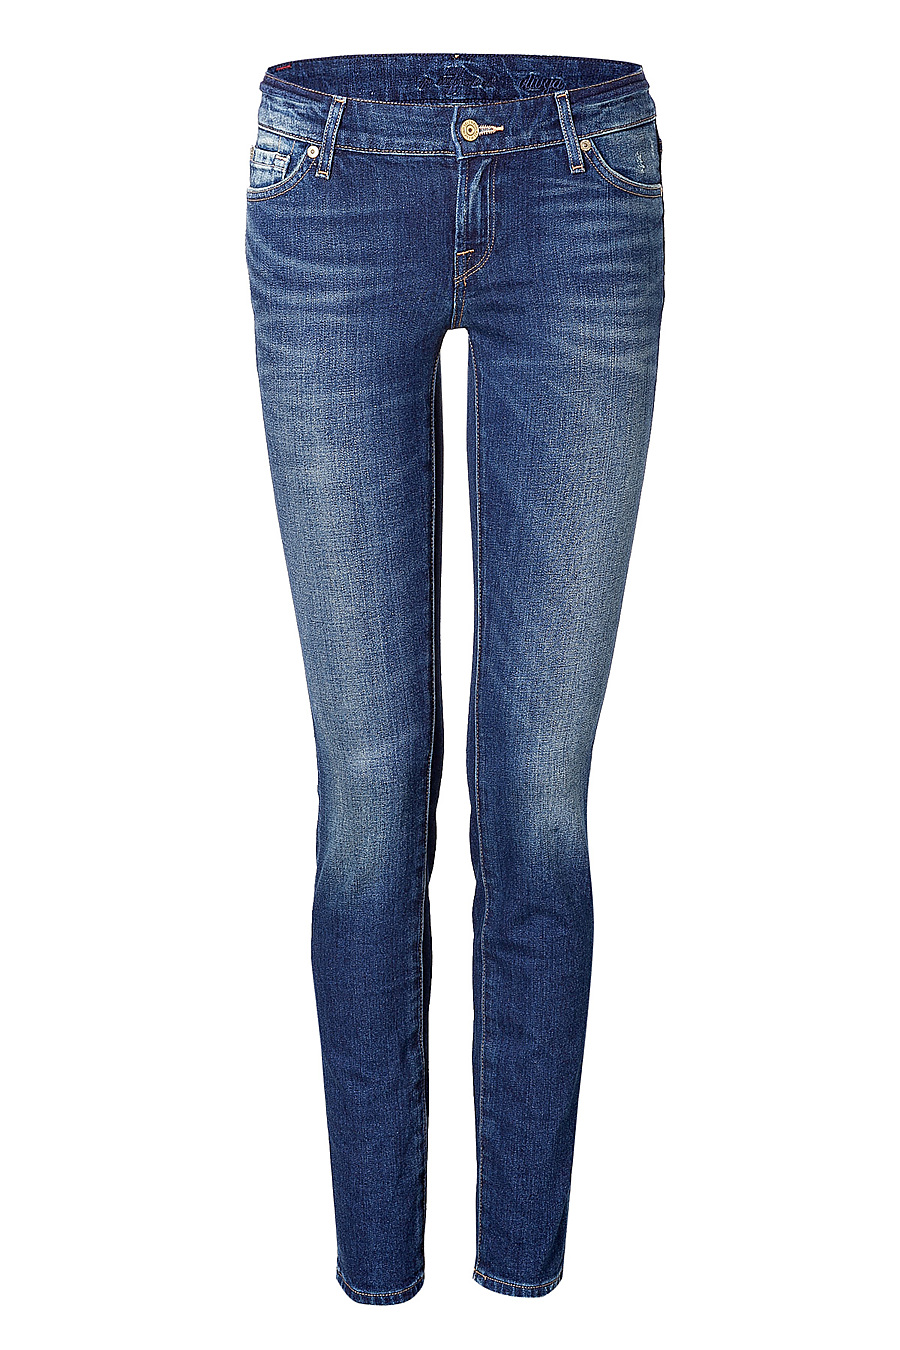 Seven for all Mankind - Olivya Skinny Jeans